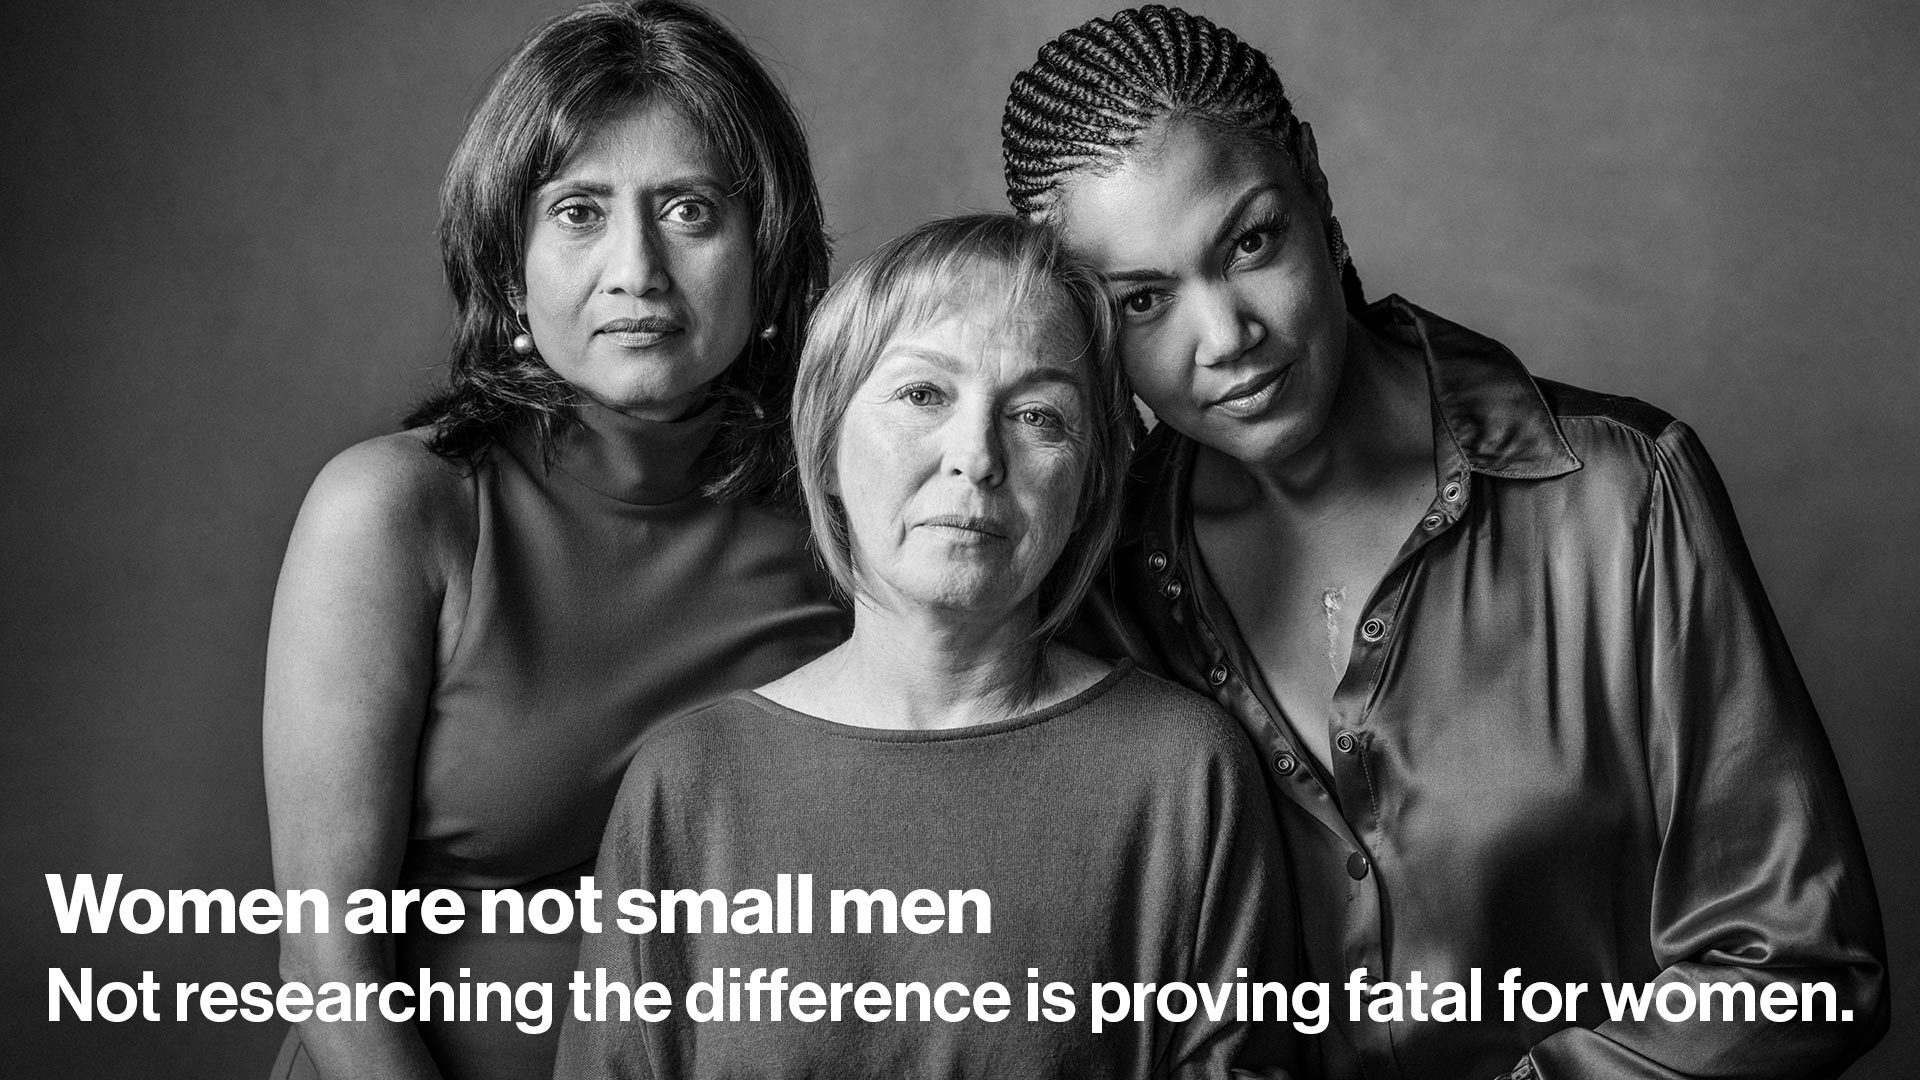 Women are not small men. Not researching the difference is proving fatal for women.